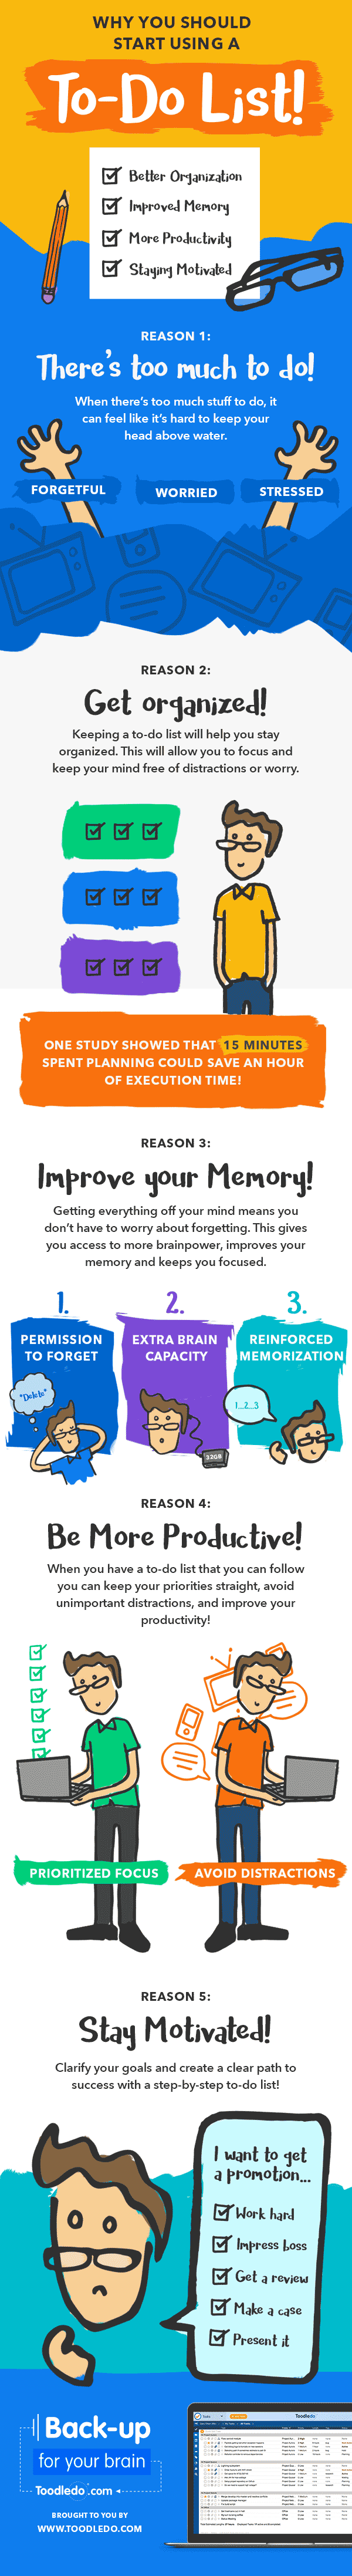 Get organized, improve your memory, increase your productivity and stay motivated. Our infographic explains the 5 reasons you should start using a to-do list today!